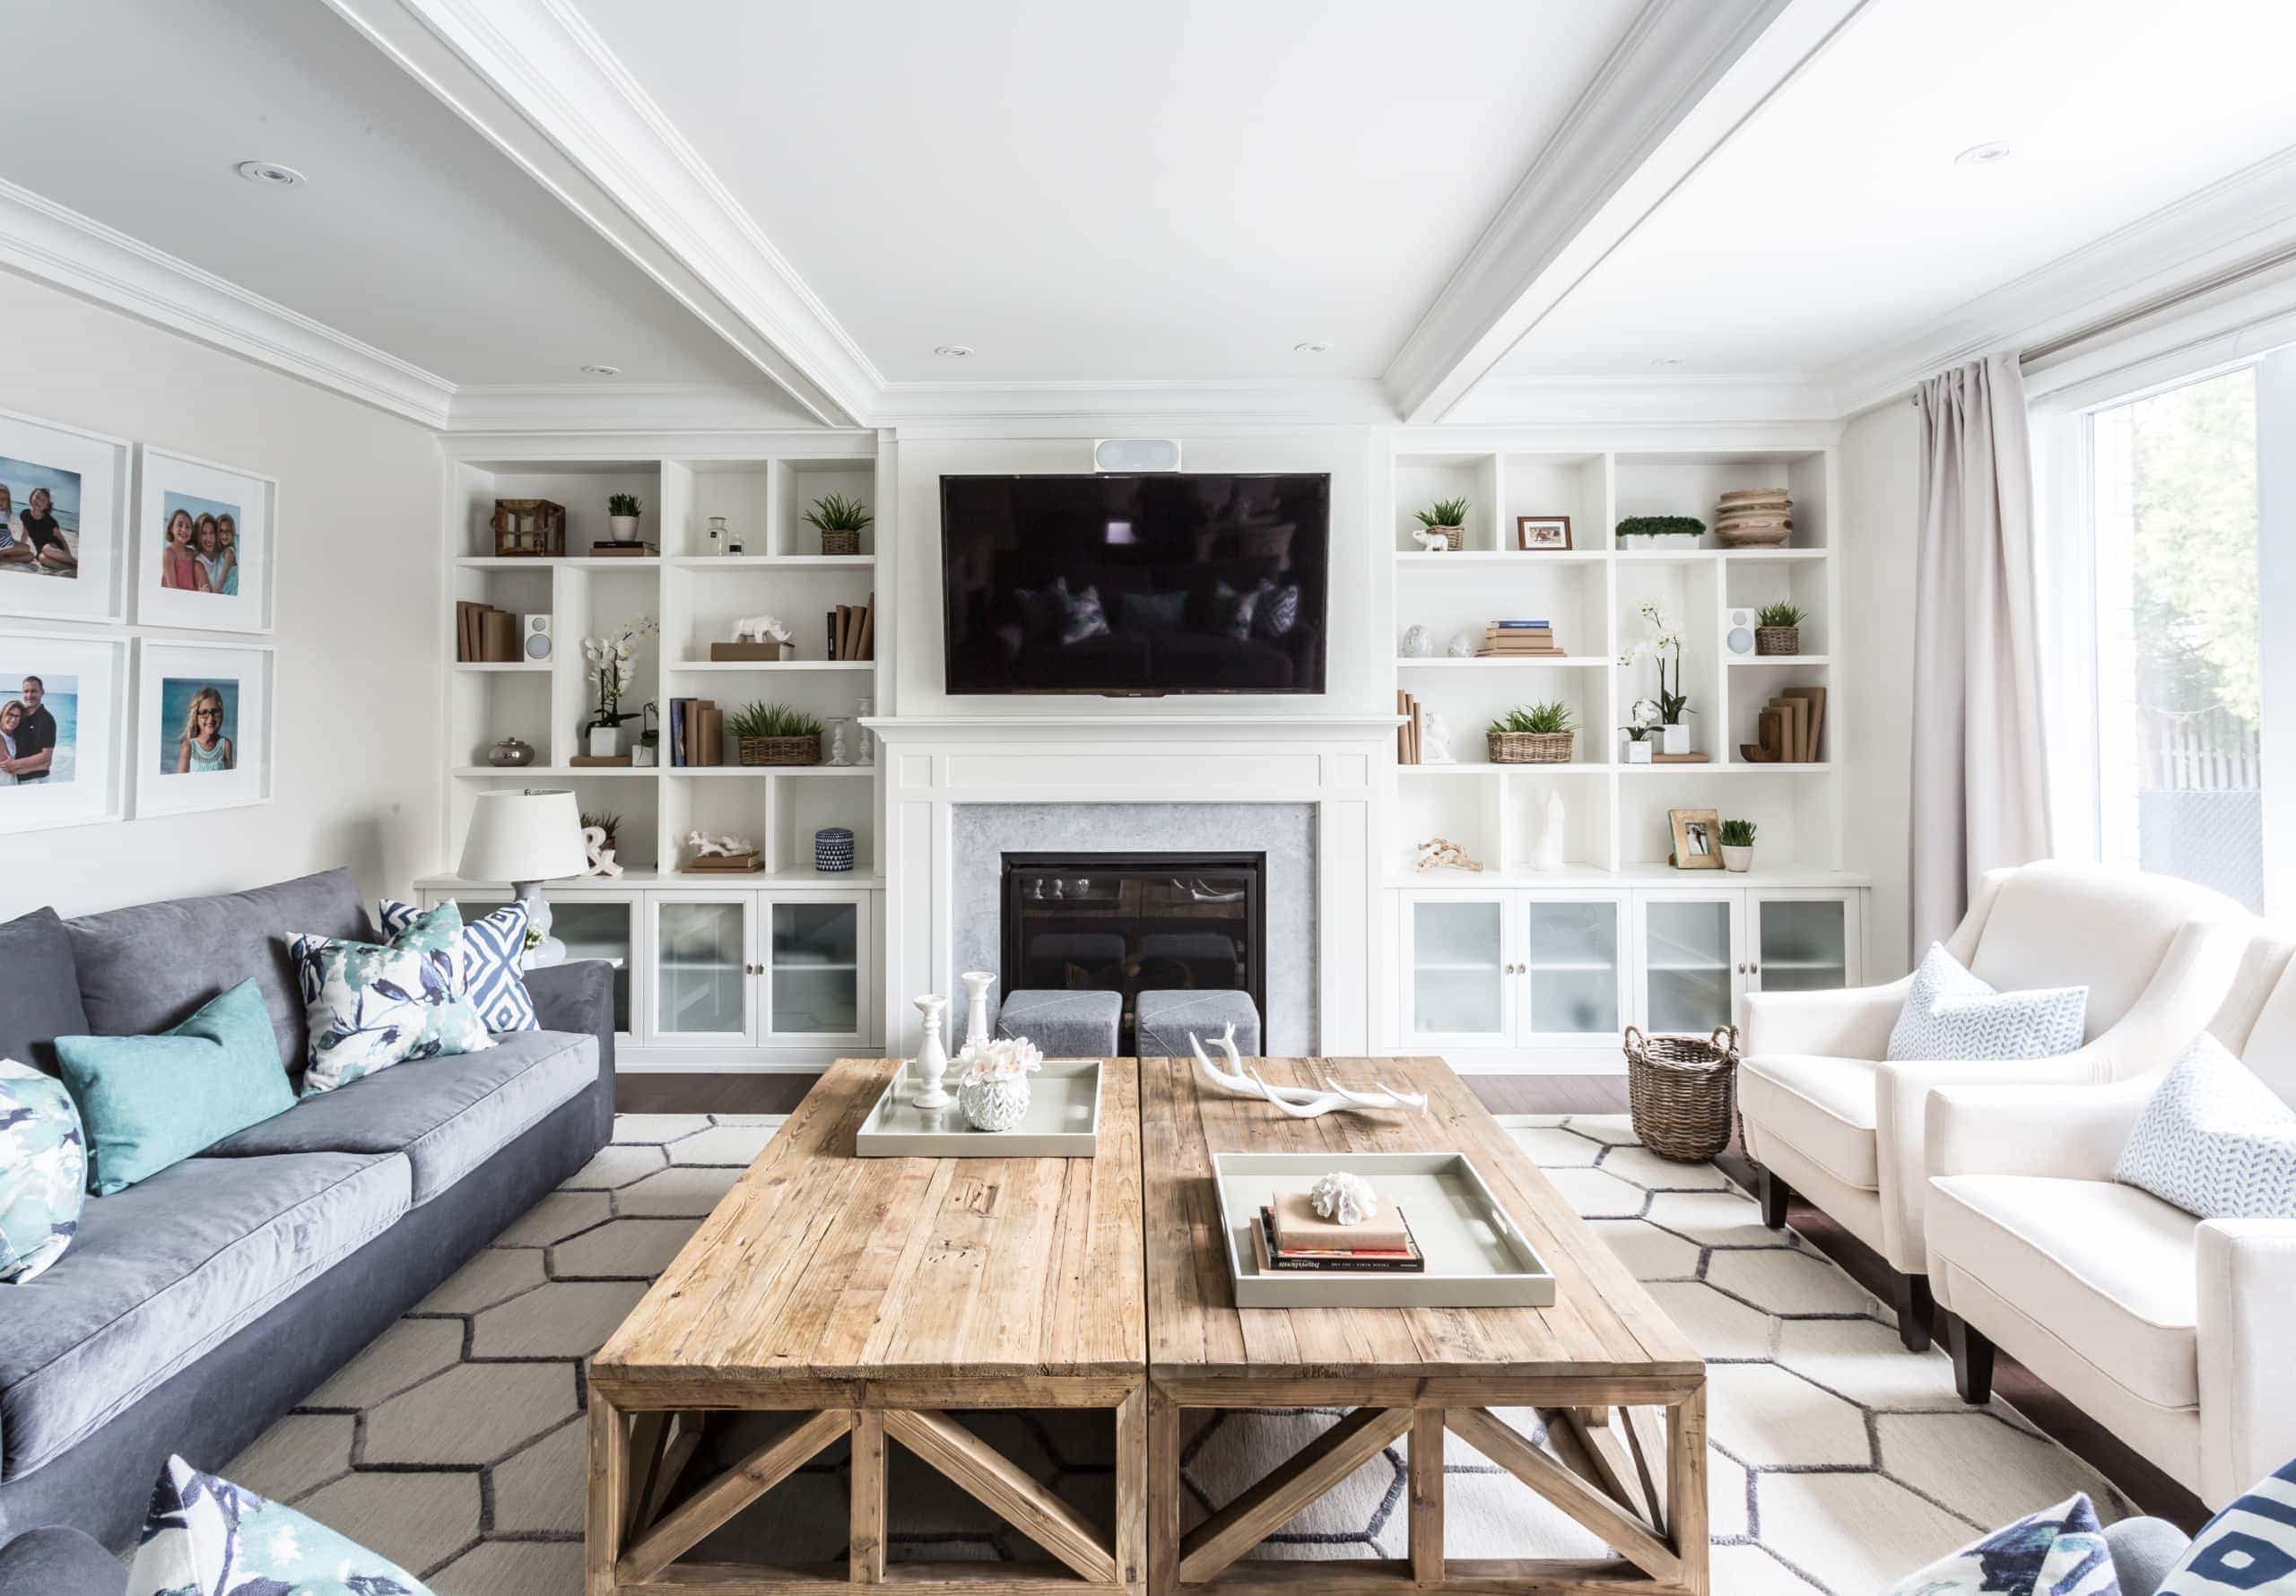 Television above the fireplace flanked by shelving units